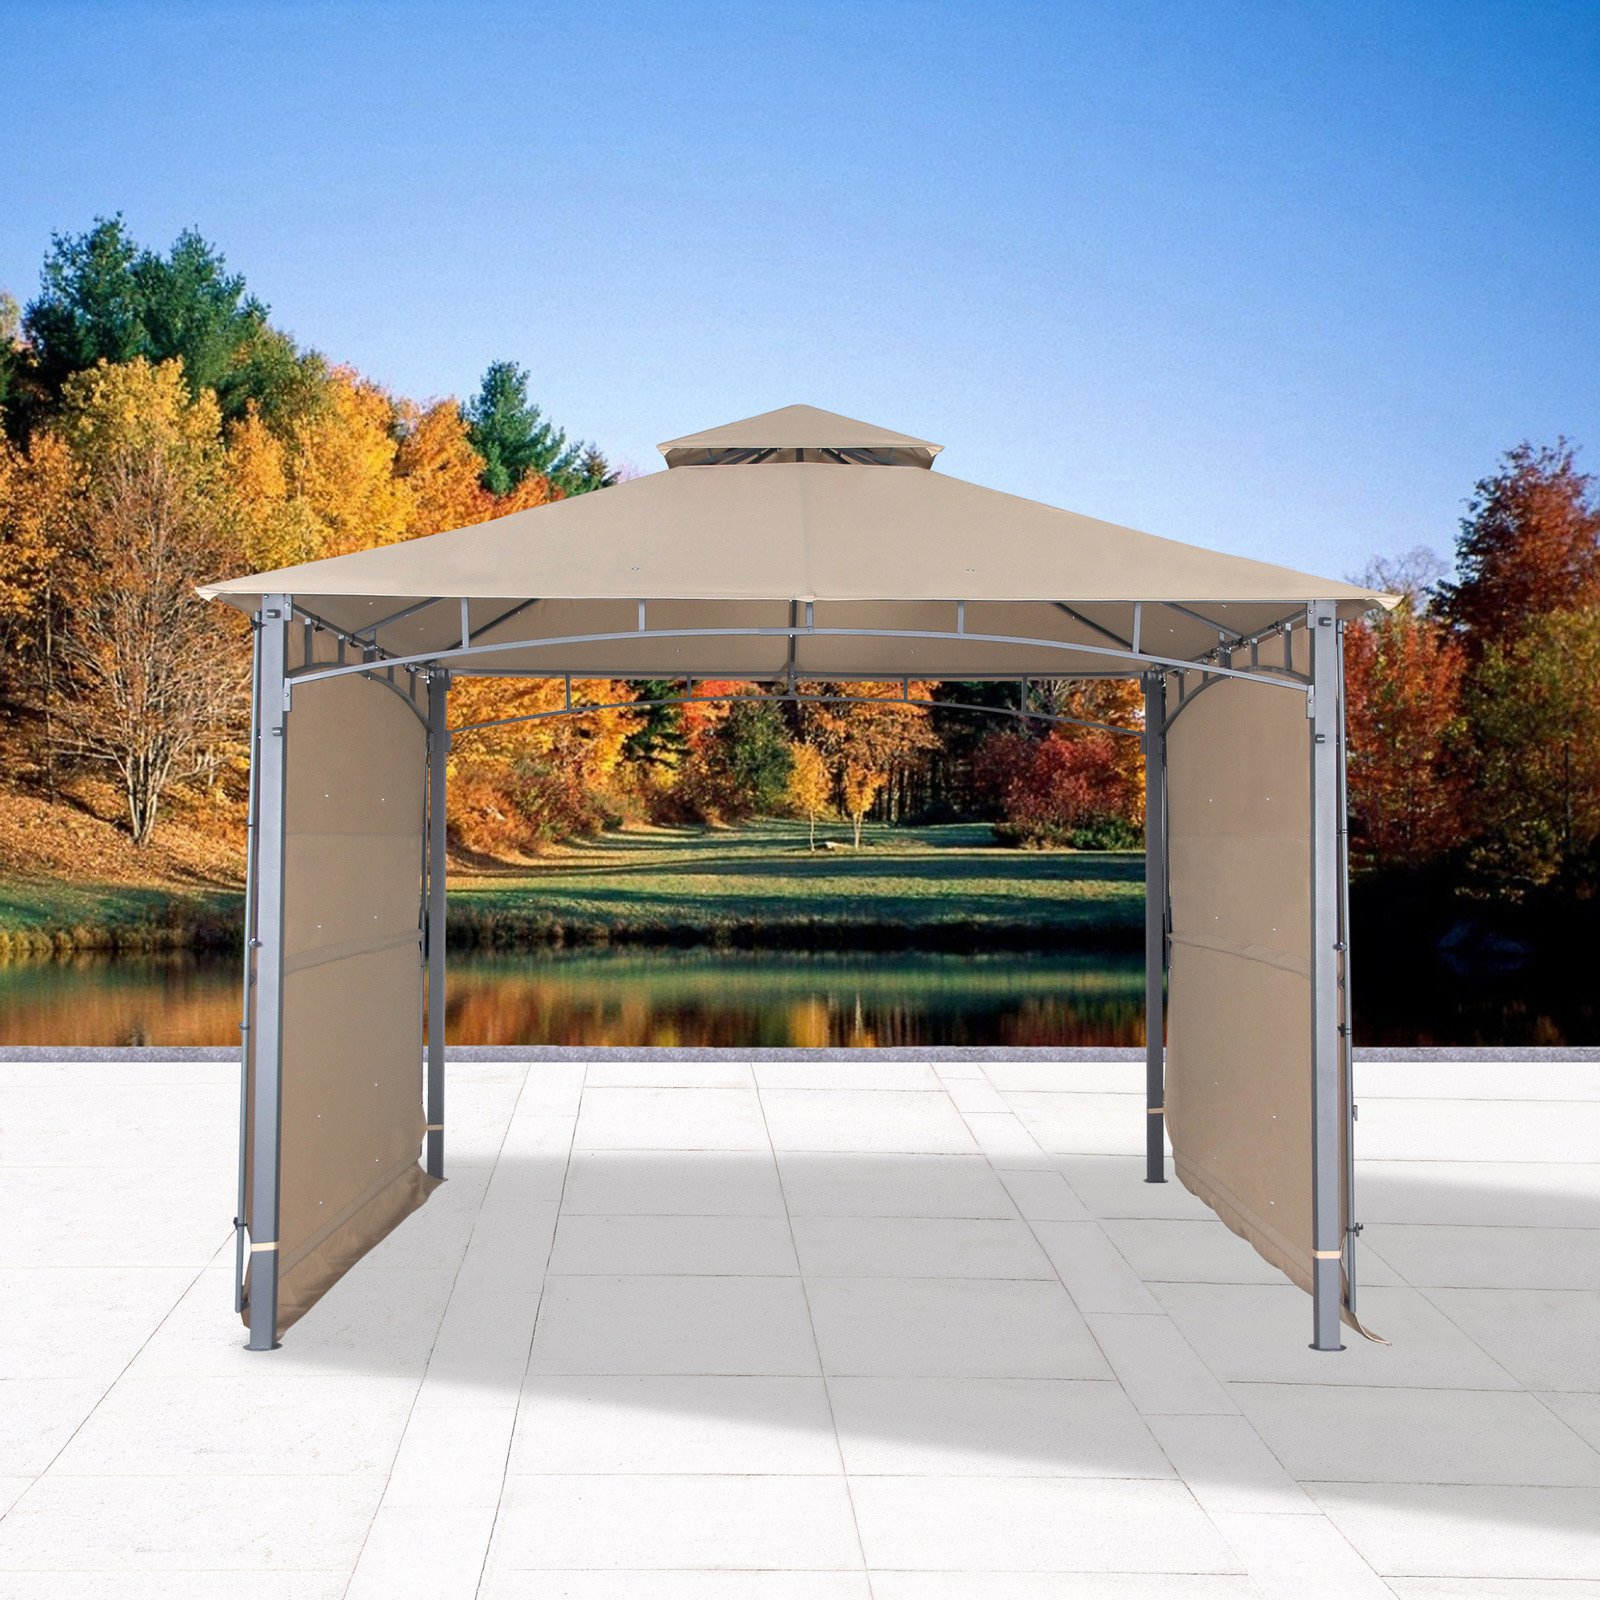 Cloud Mountain 10.83 ft. Two Tiered Gazebo Canopy with Two Side Sunshade Walls by Cloud Mountain